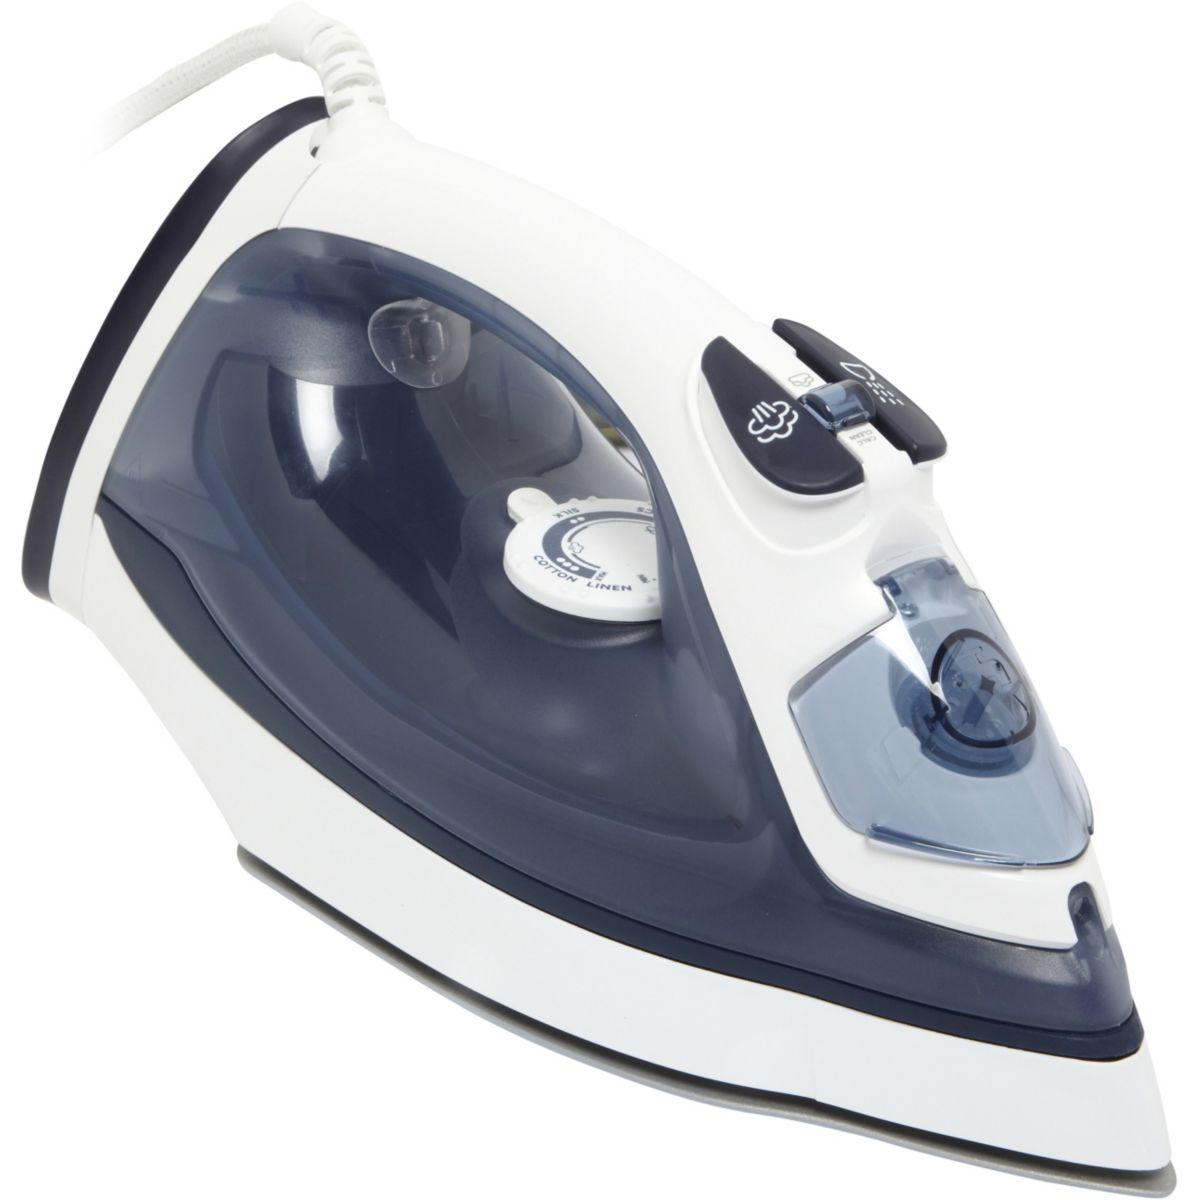 Fer à repasser philips gc2985/25 steamglide - 3% de remise : code pam3 (photo)